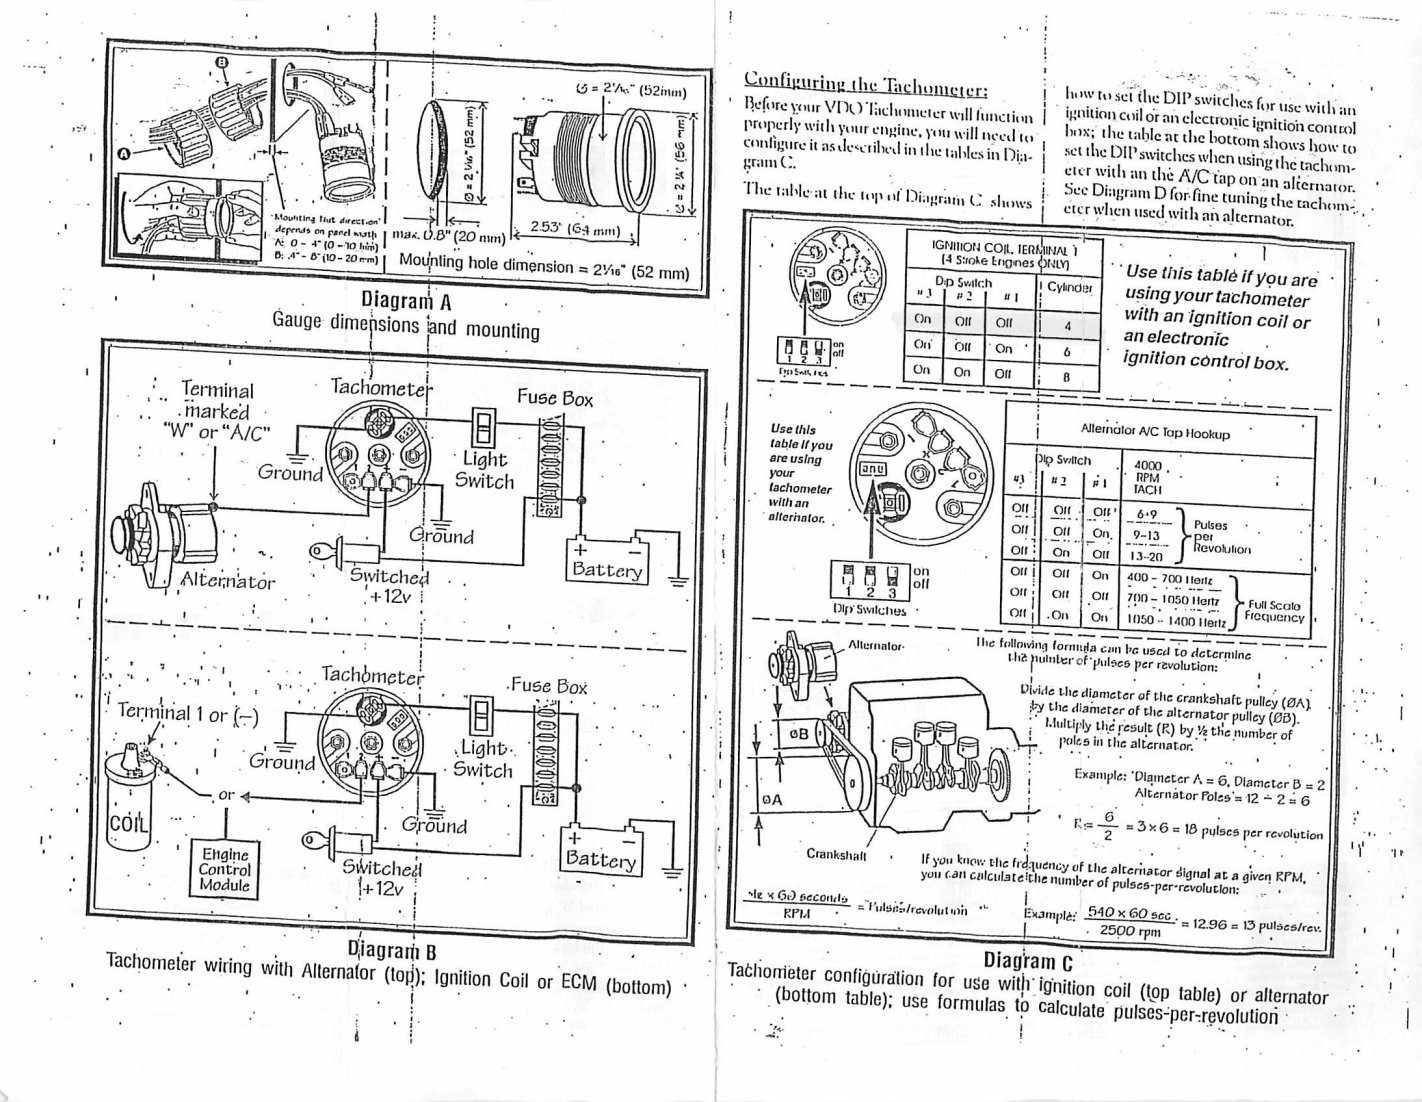 Vdo Gauges Wiring Diagrams With Tachometer Diagram Coil Merzienet regarding Boat Gauge Wiring Diagram For Tachometer